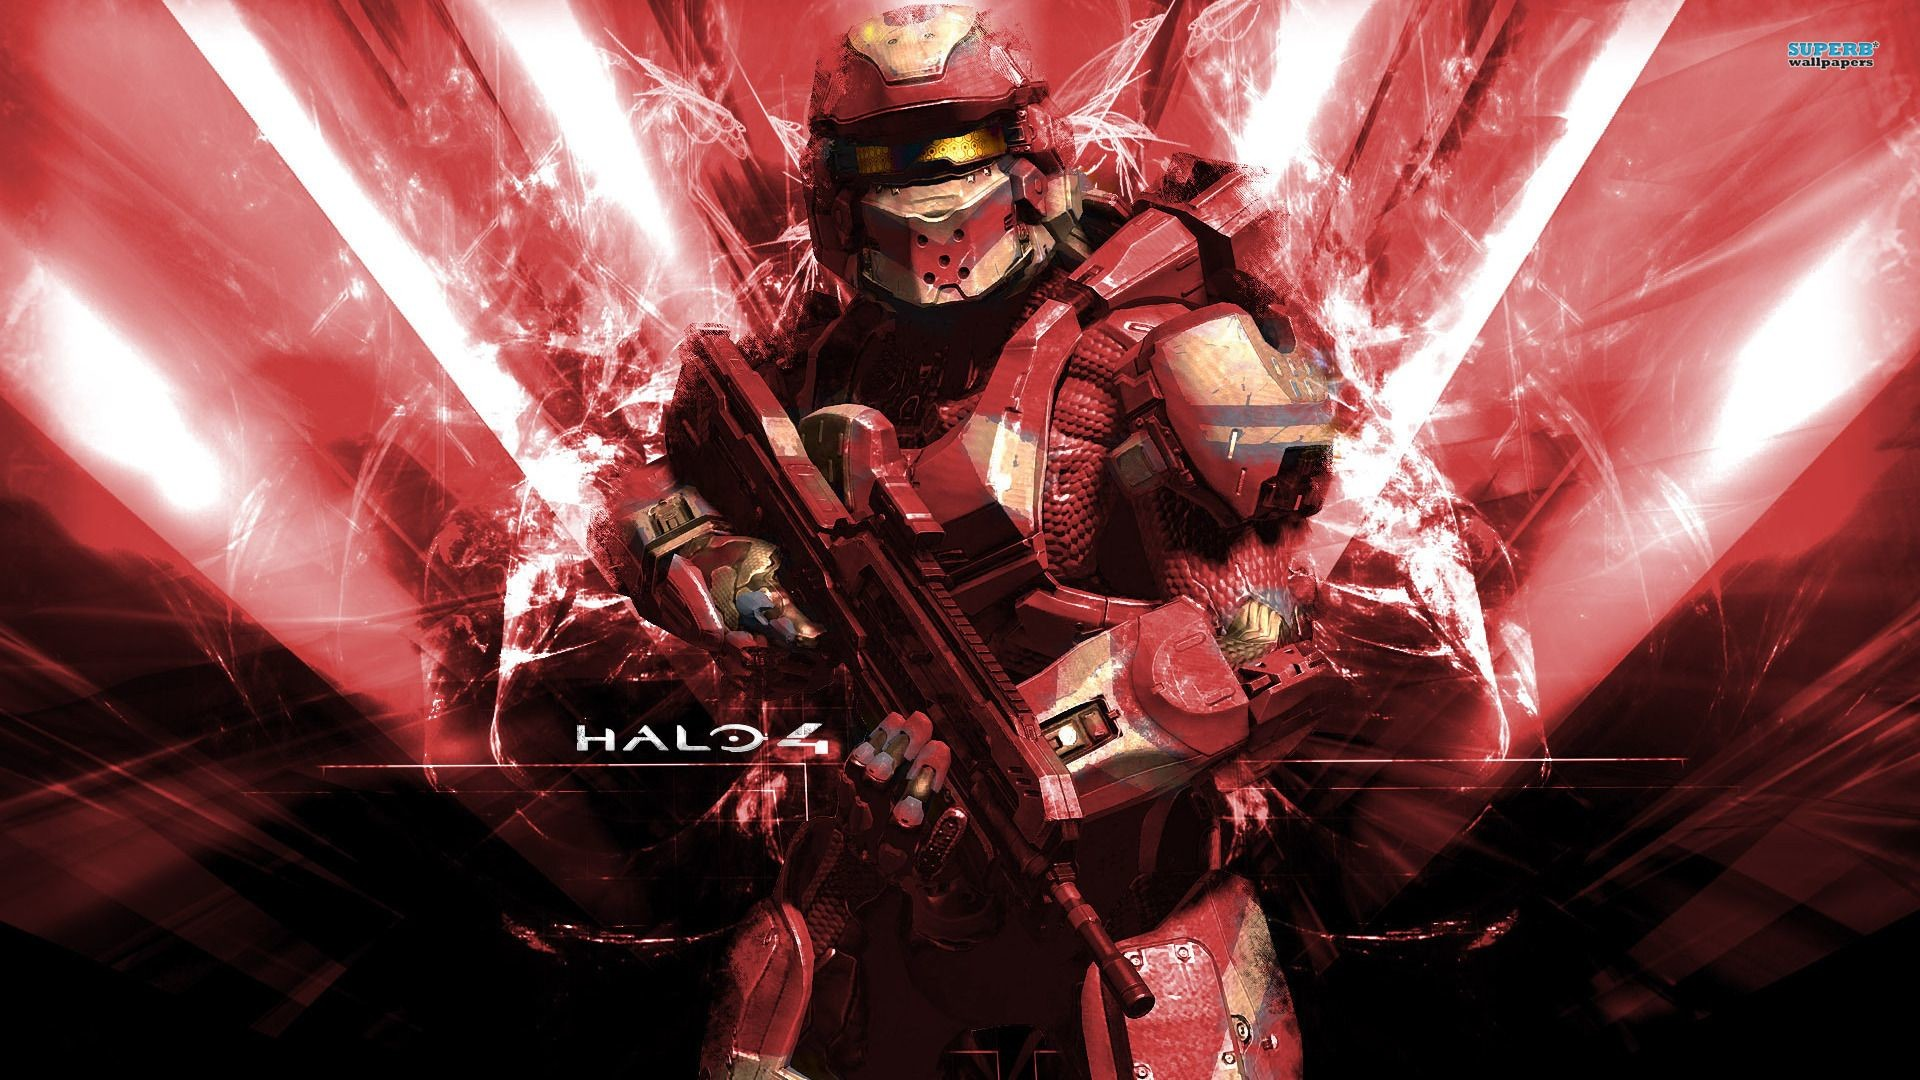 Halo 4 wallpaper – Game wallpapers – #15530